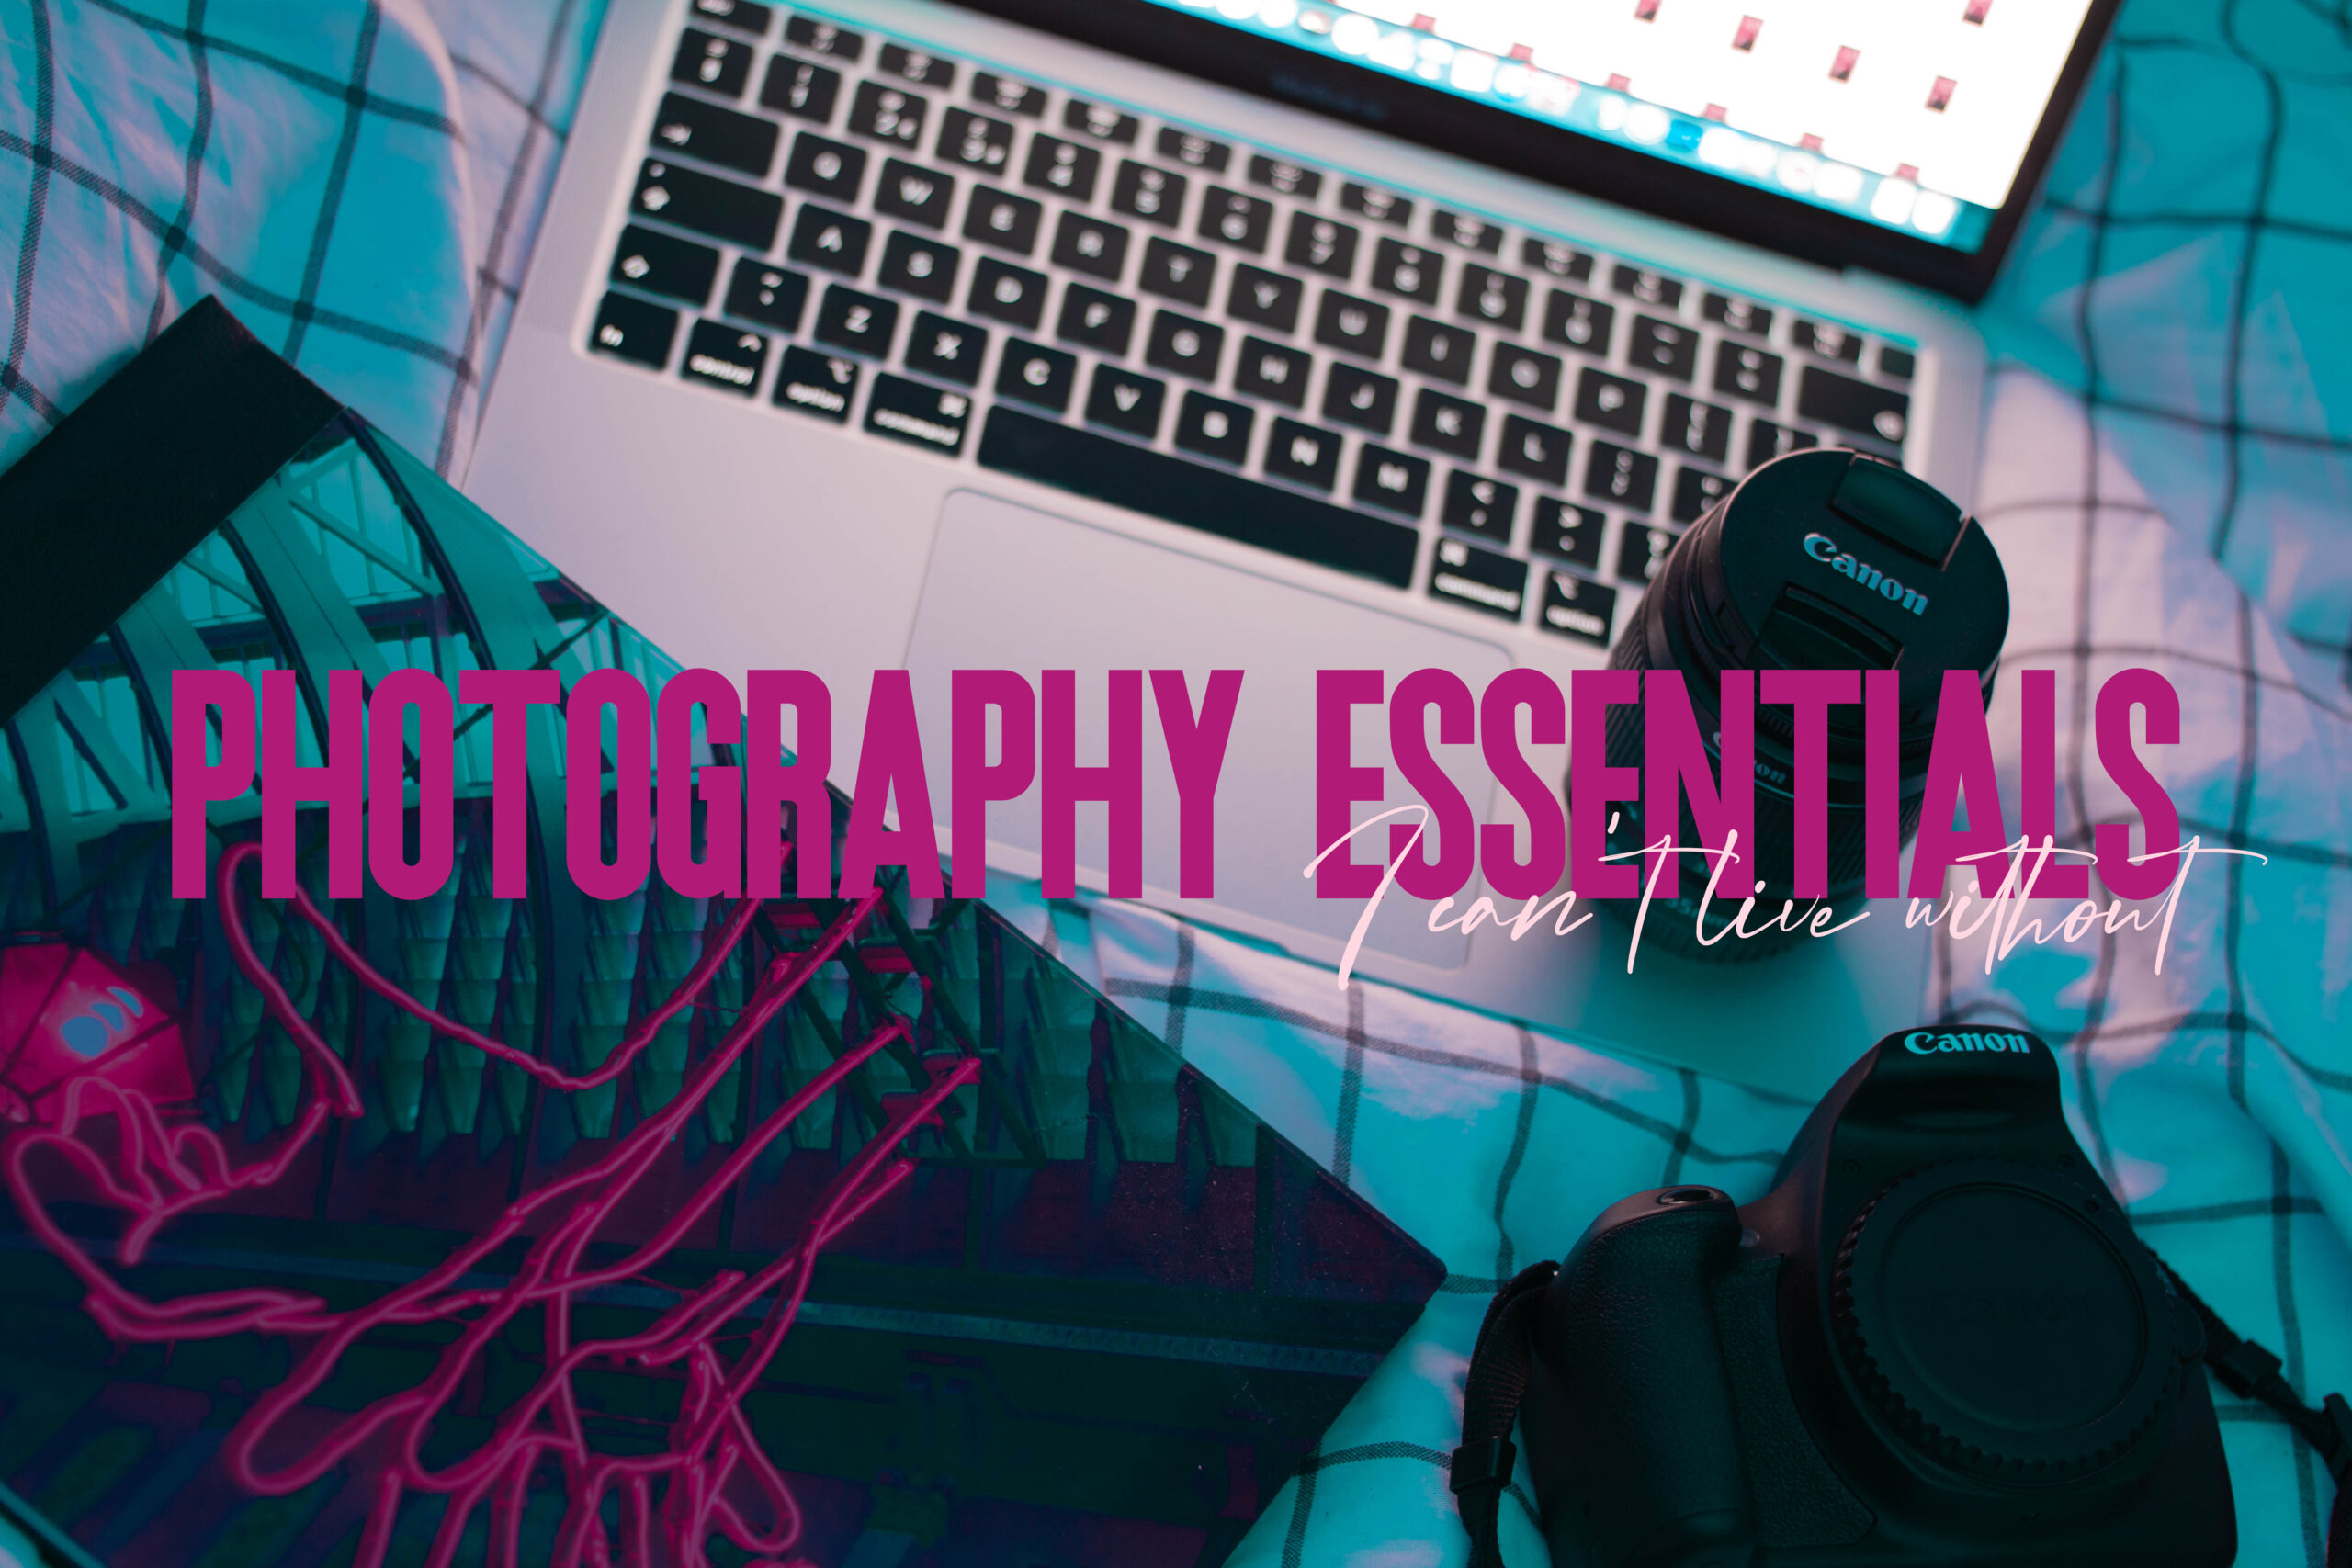 Featured image for photography essentials I can't live without